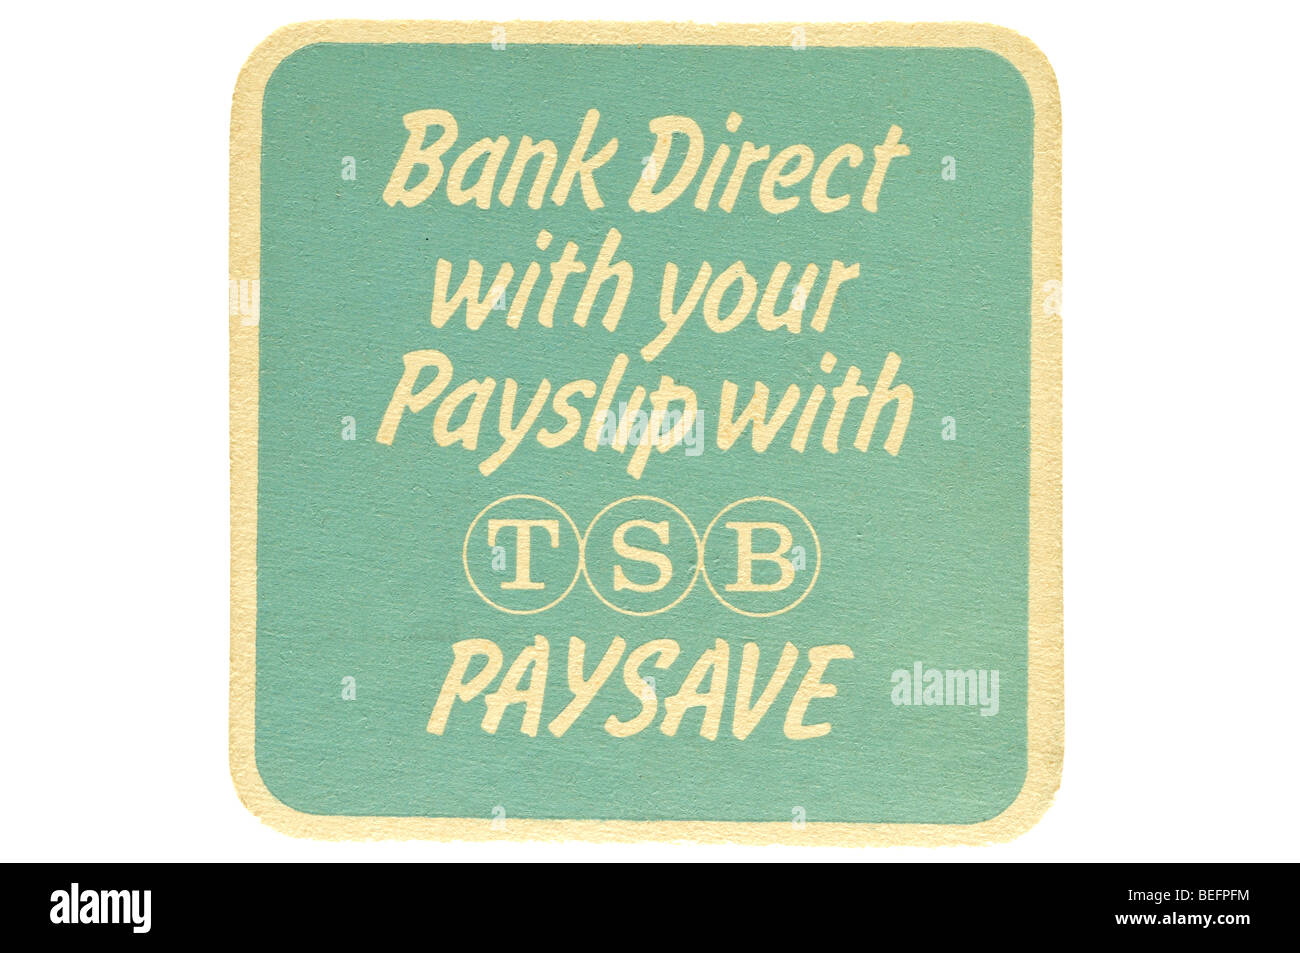 Lovely Bulldog Security Wiring Small 7 Way Guitar Switch Round Car Alarm System Diagram Viper Remote Start Wiring Youthful One Humbucker One Volume Wiring PurpleStrat Wiring Bridge Tone Bank Direct With Your Payslip With Tsb Paysave Stock Photo ..